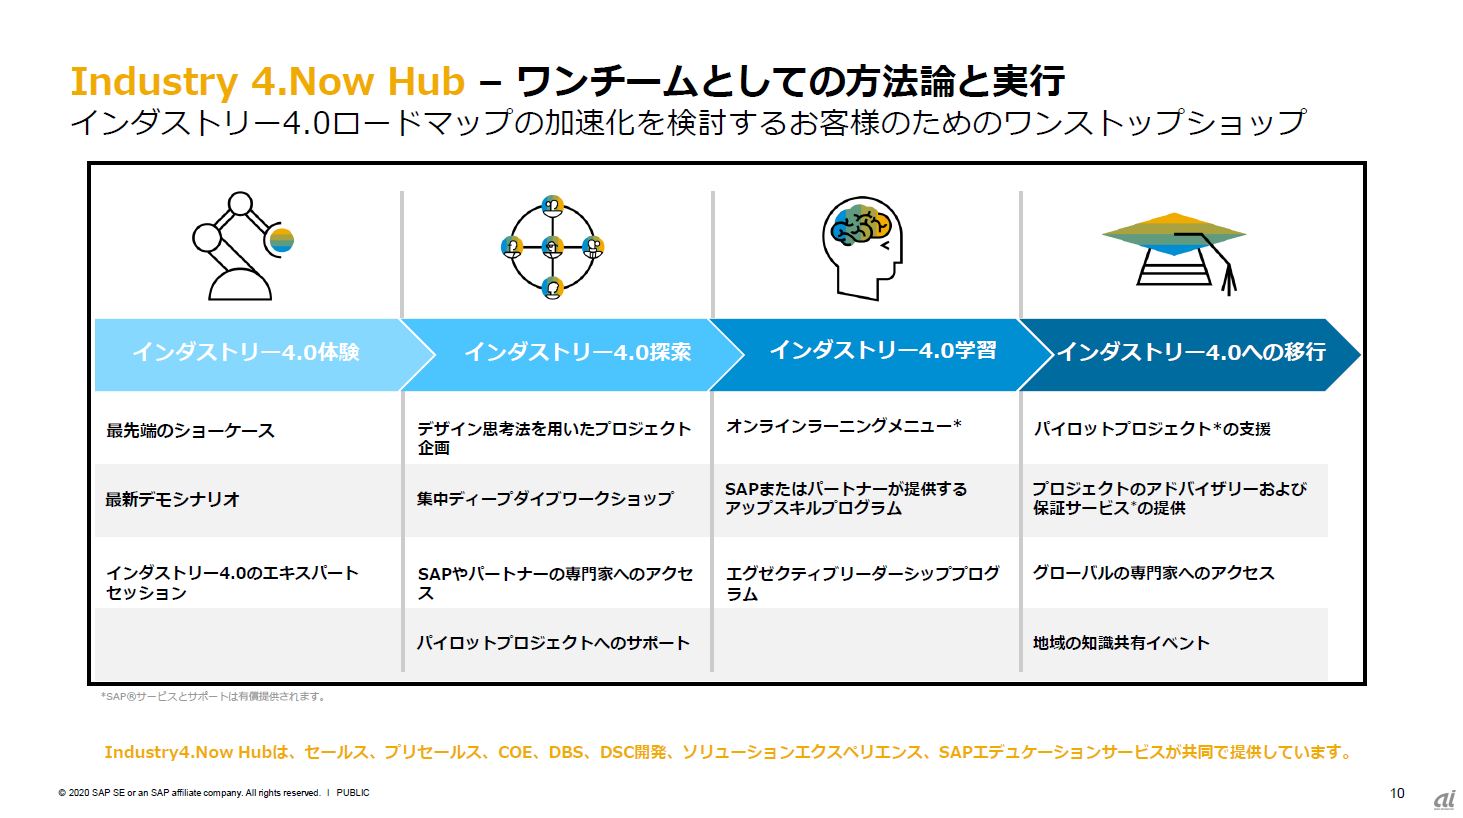 Industry 4.Now HUBの概要